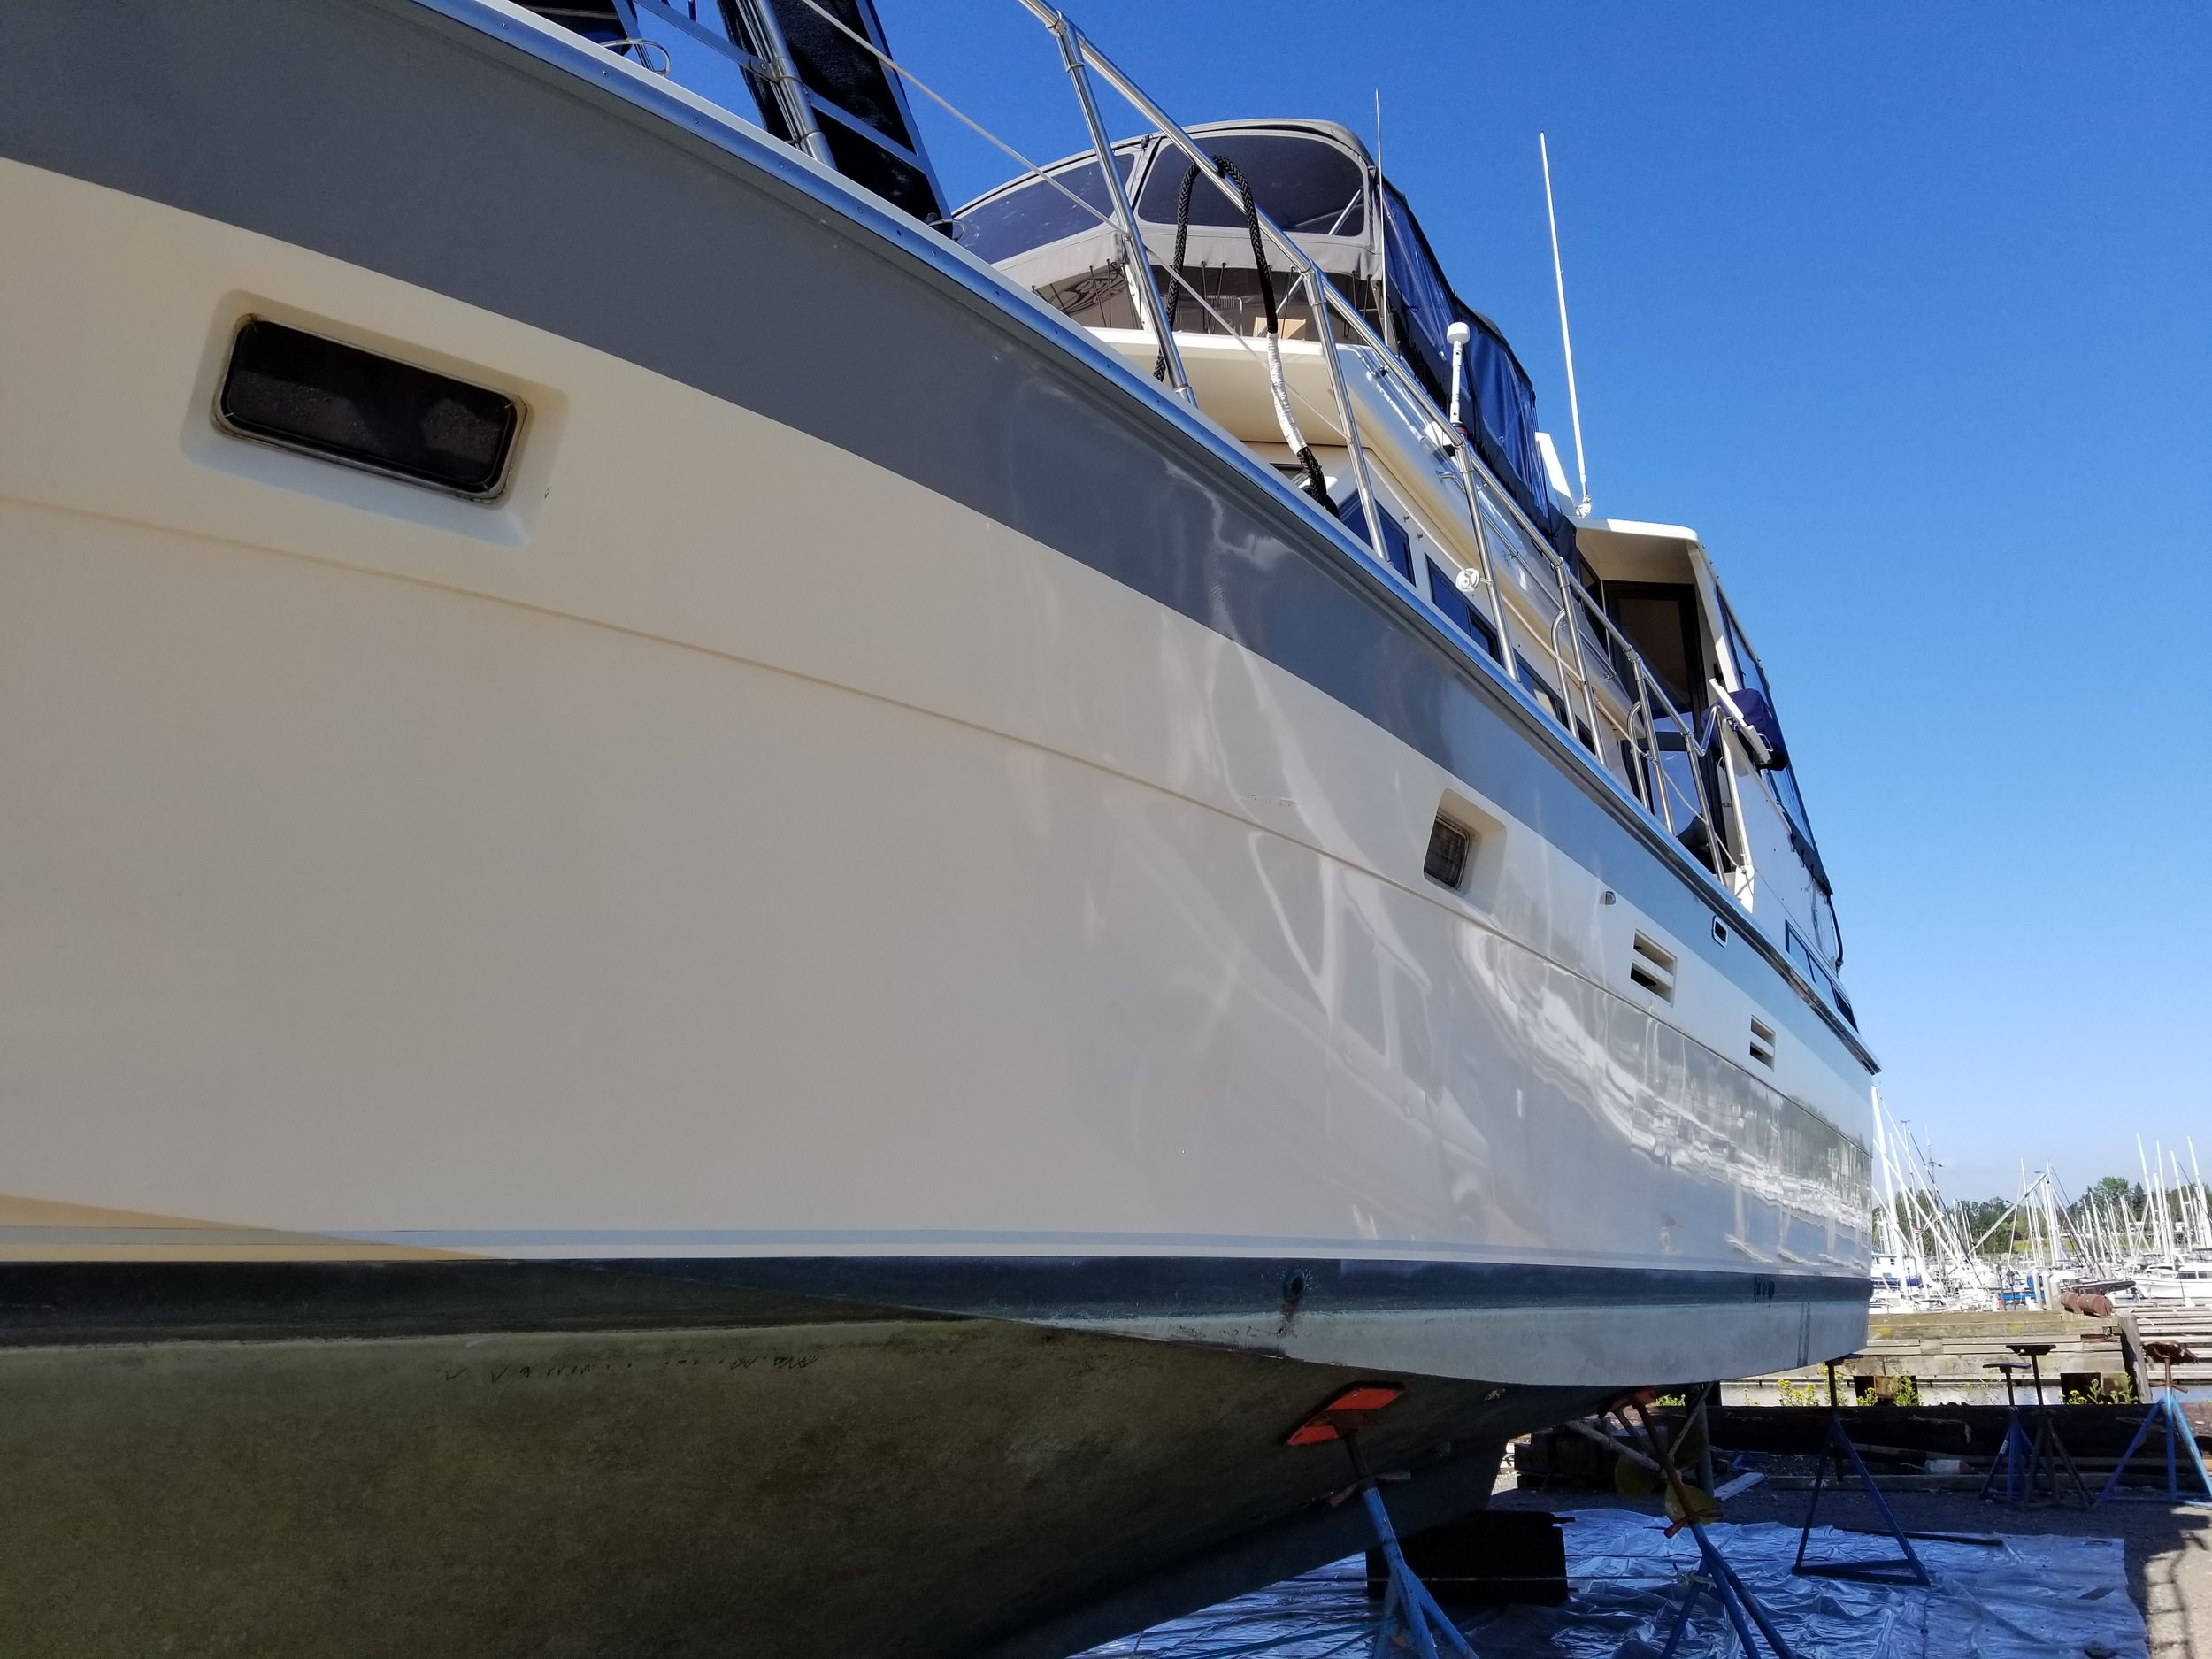 A nicely waxed hull always makes for a great first impression…